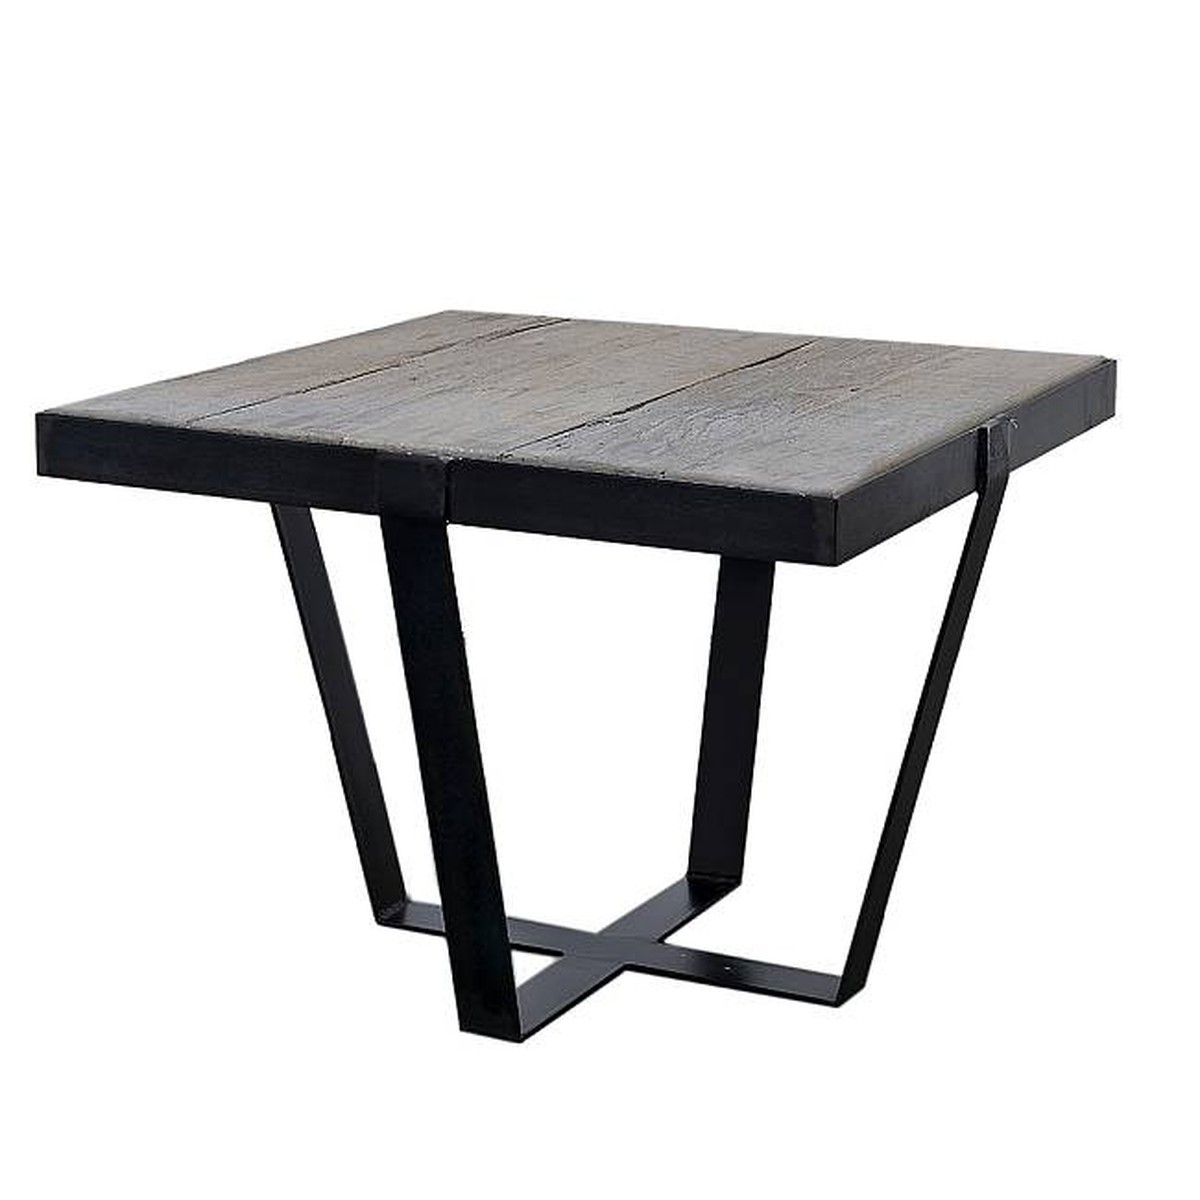 Pr interiors watou table d 39 appoint watou heritage carr e - Table d appoint carree ...